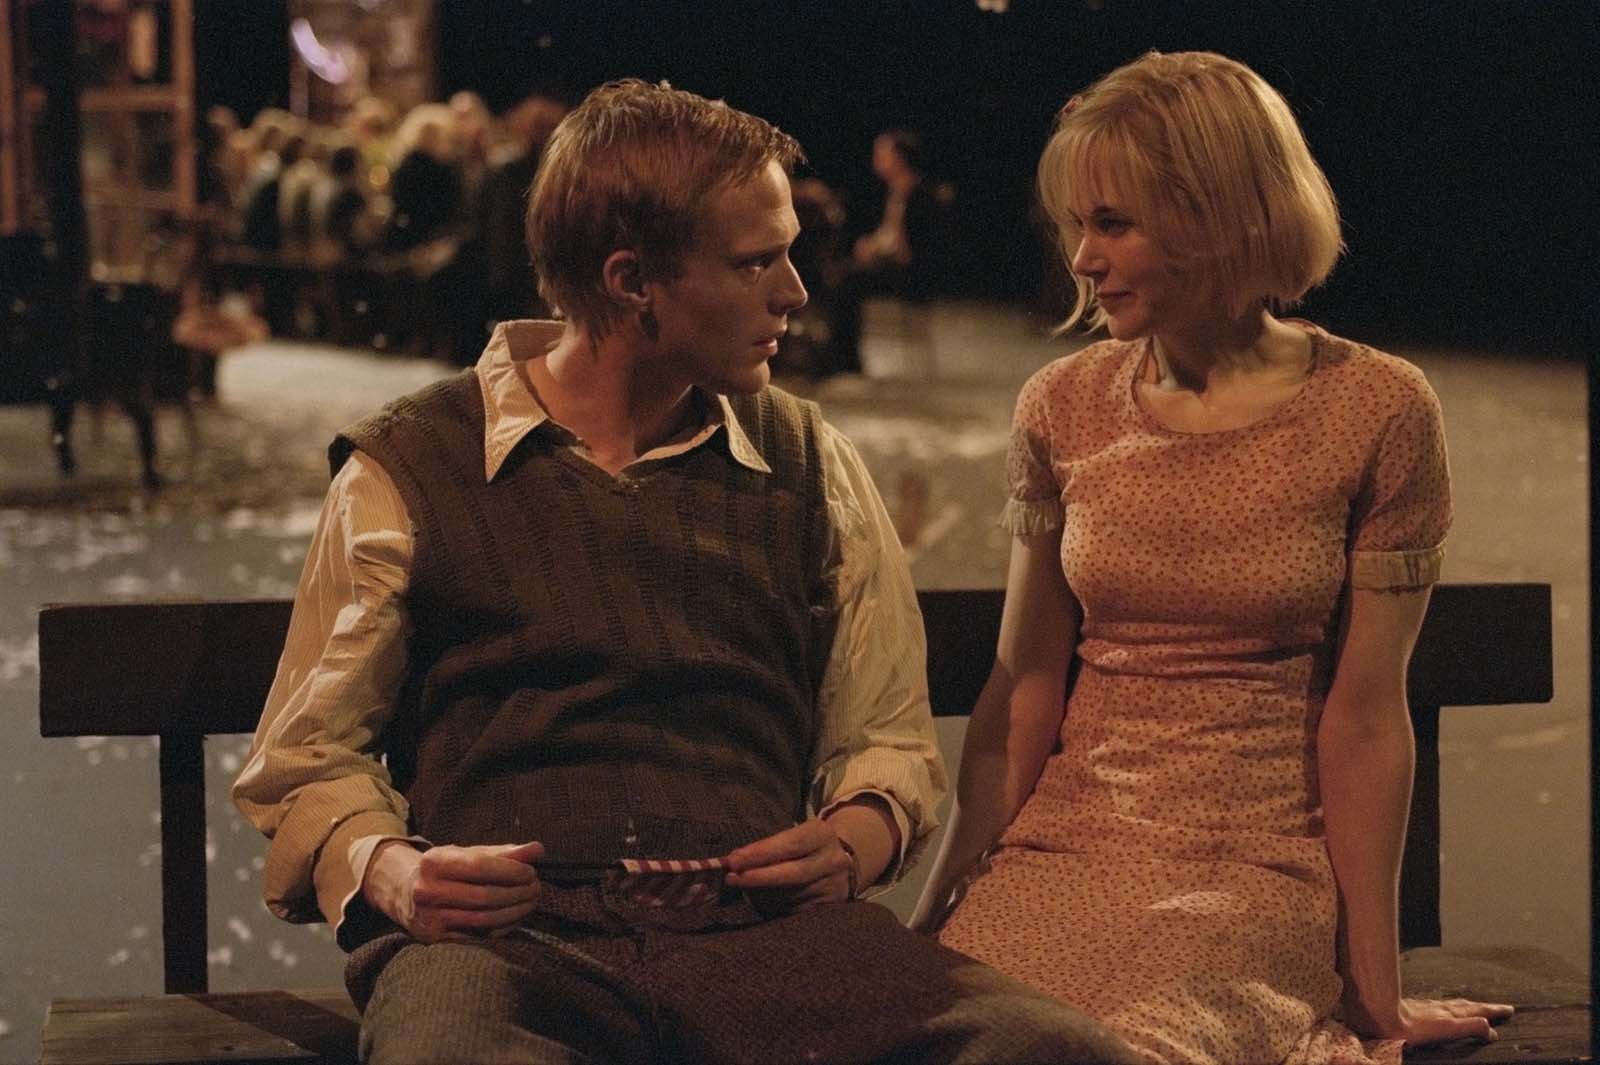 DOGVILLE - FOR FURTHER INFORMATION PLEASE CONTACT THE ICON PRESS OFFICE ON 020 7494 8190 Release date 13 FEBRUARY, 2004, Certificate TBC, Running Time TBC